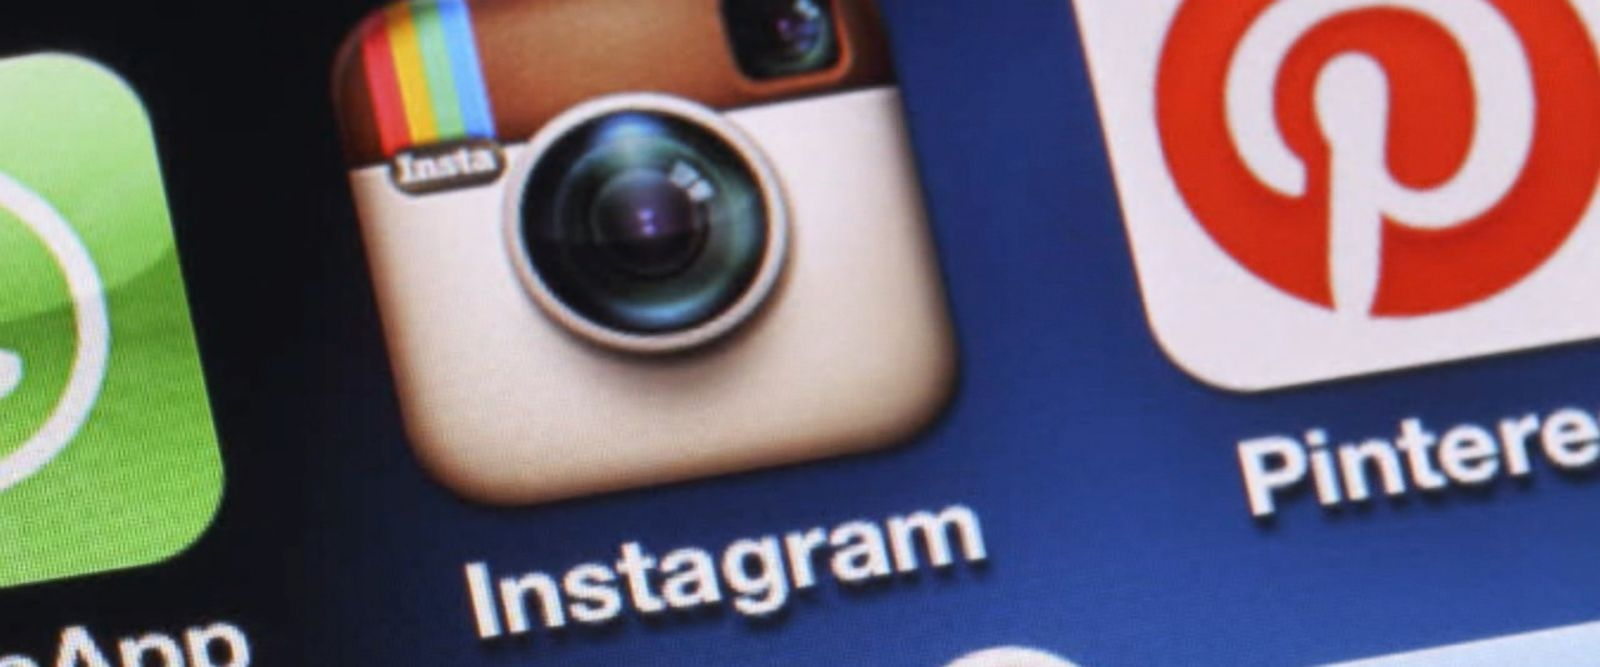 VIDEO: Instagram CEO Kevin Systrom and Mike Krieger will step down in the coming weeks.